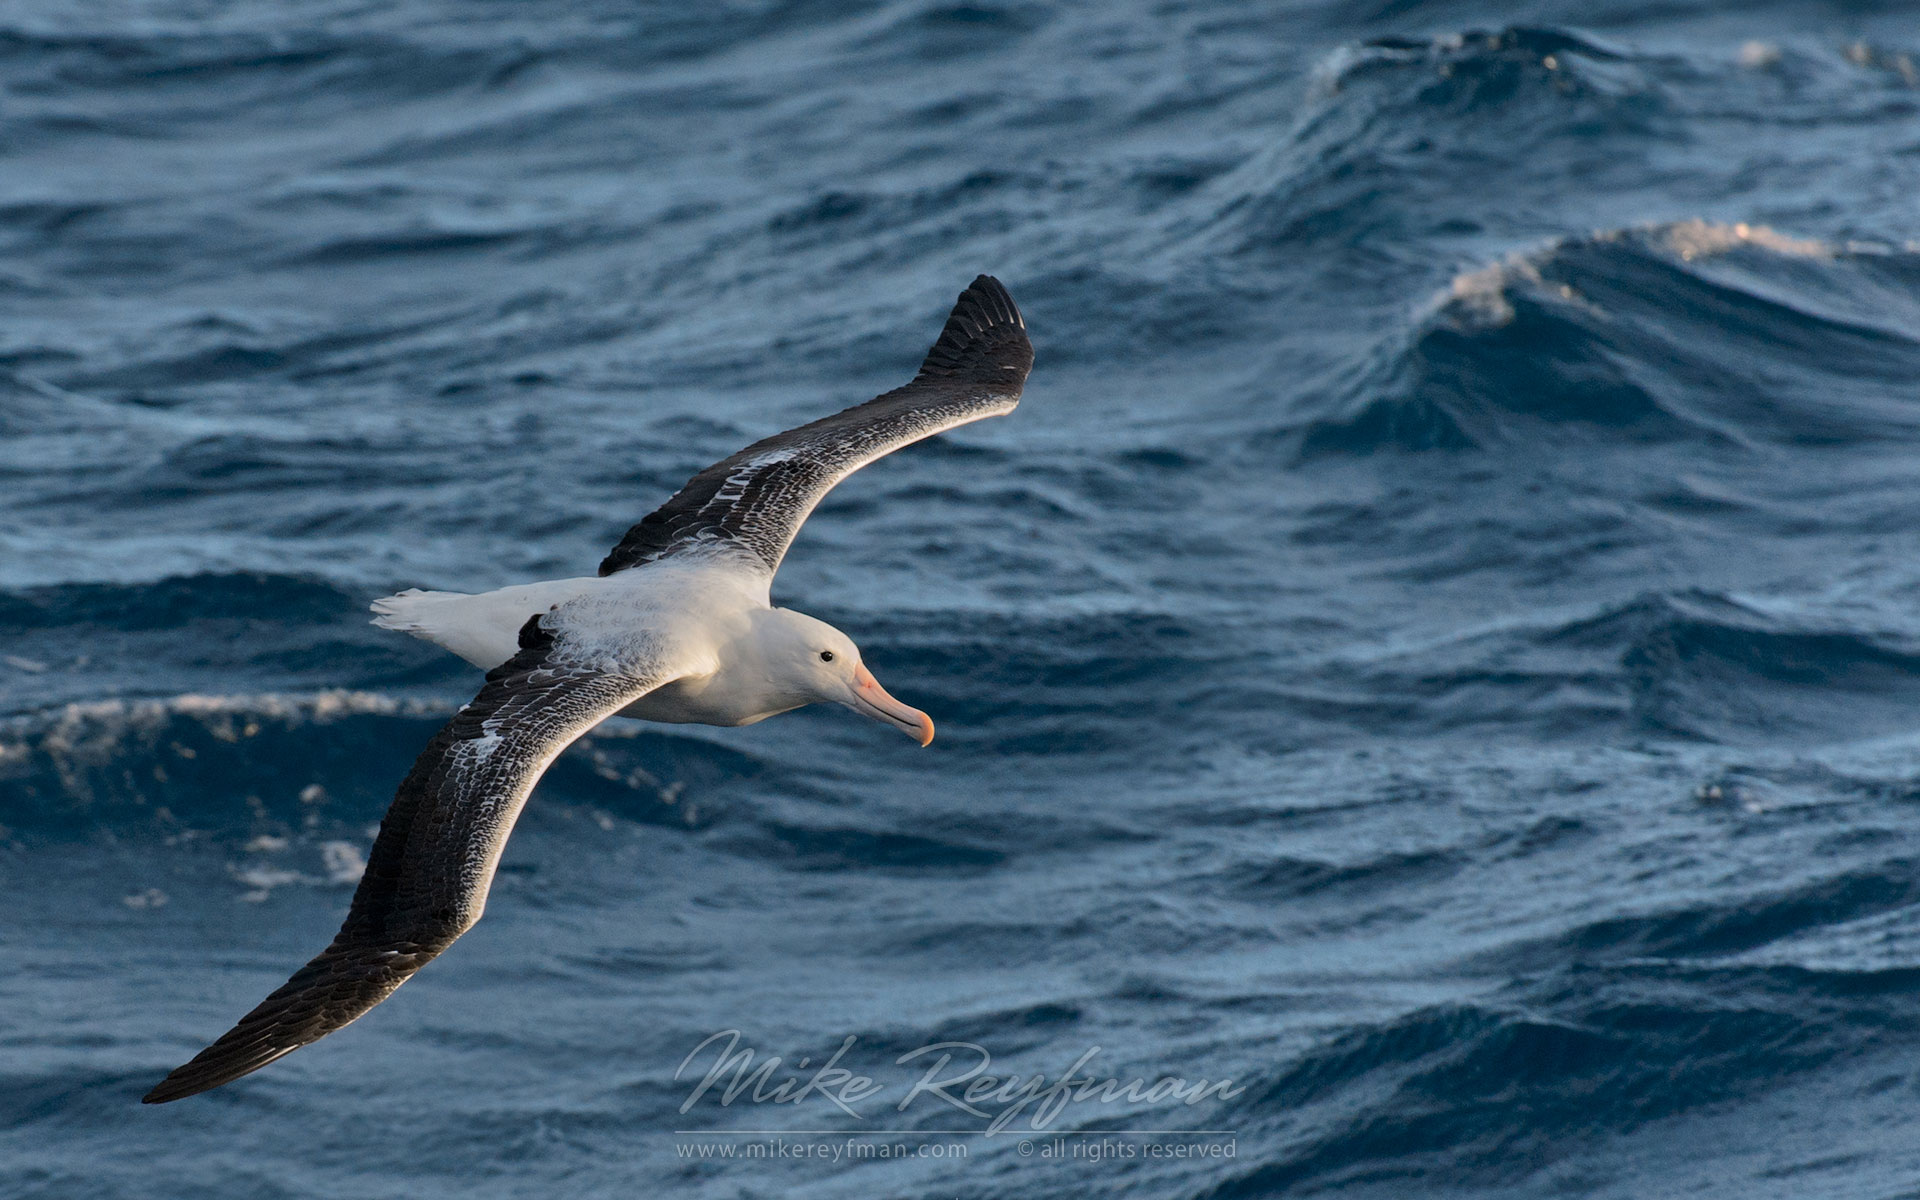 Wandering Albatross (Diomedea exulans) in flight. - Albatrosses-Petrels-Landscapes-South-Georgia-Sub-Antarctic - Mike Reyfman Photography